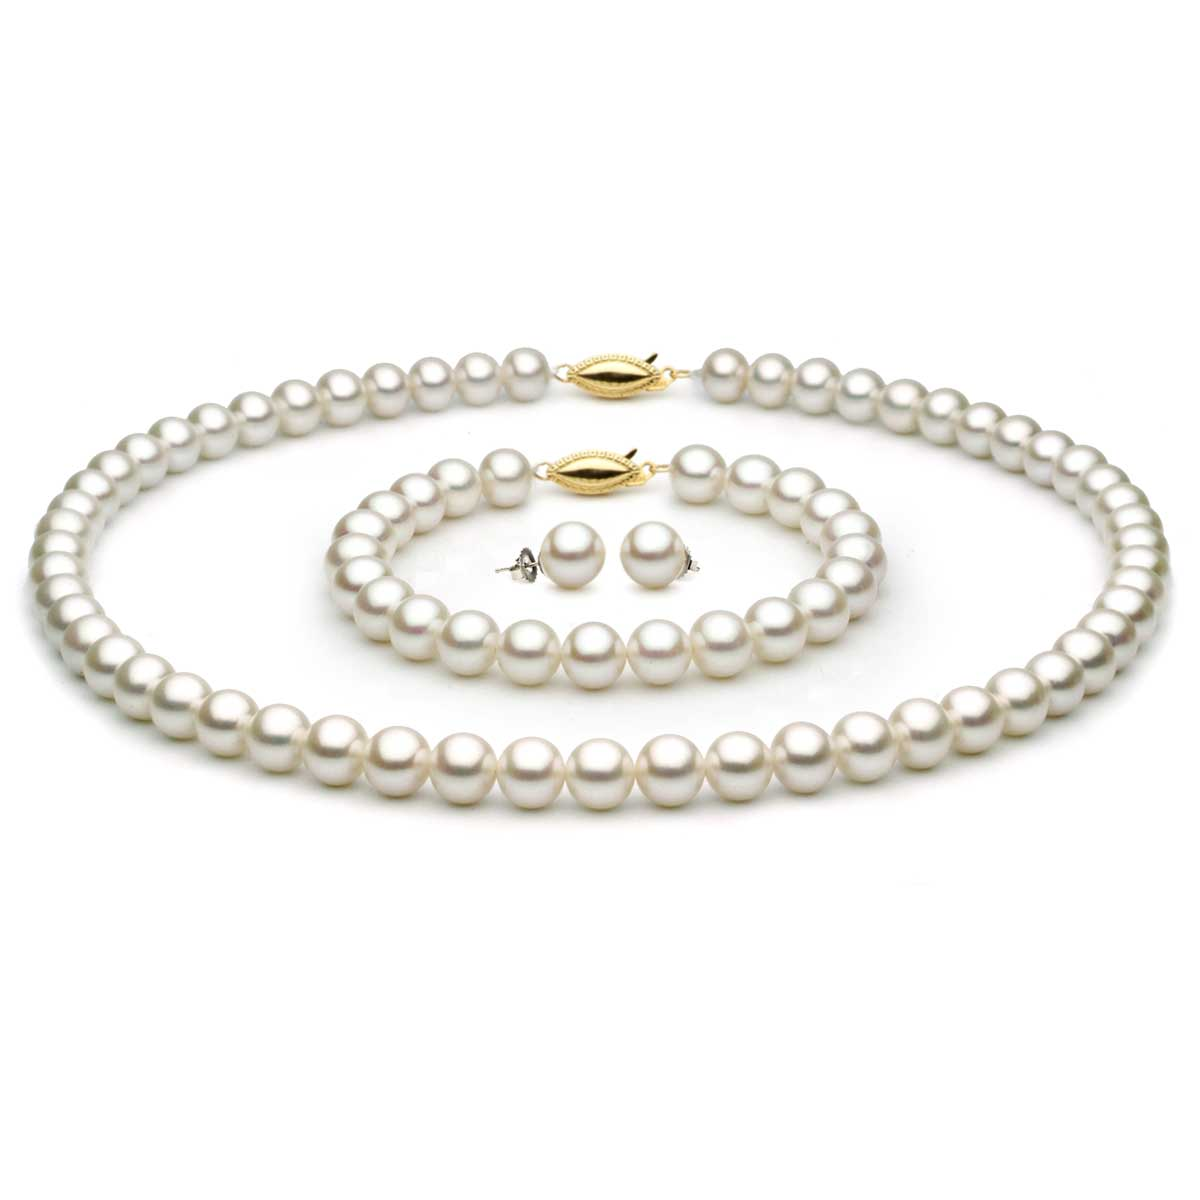 Complete set of AA Quality 7x7.5mm Japanese Akoya Pearls